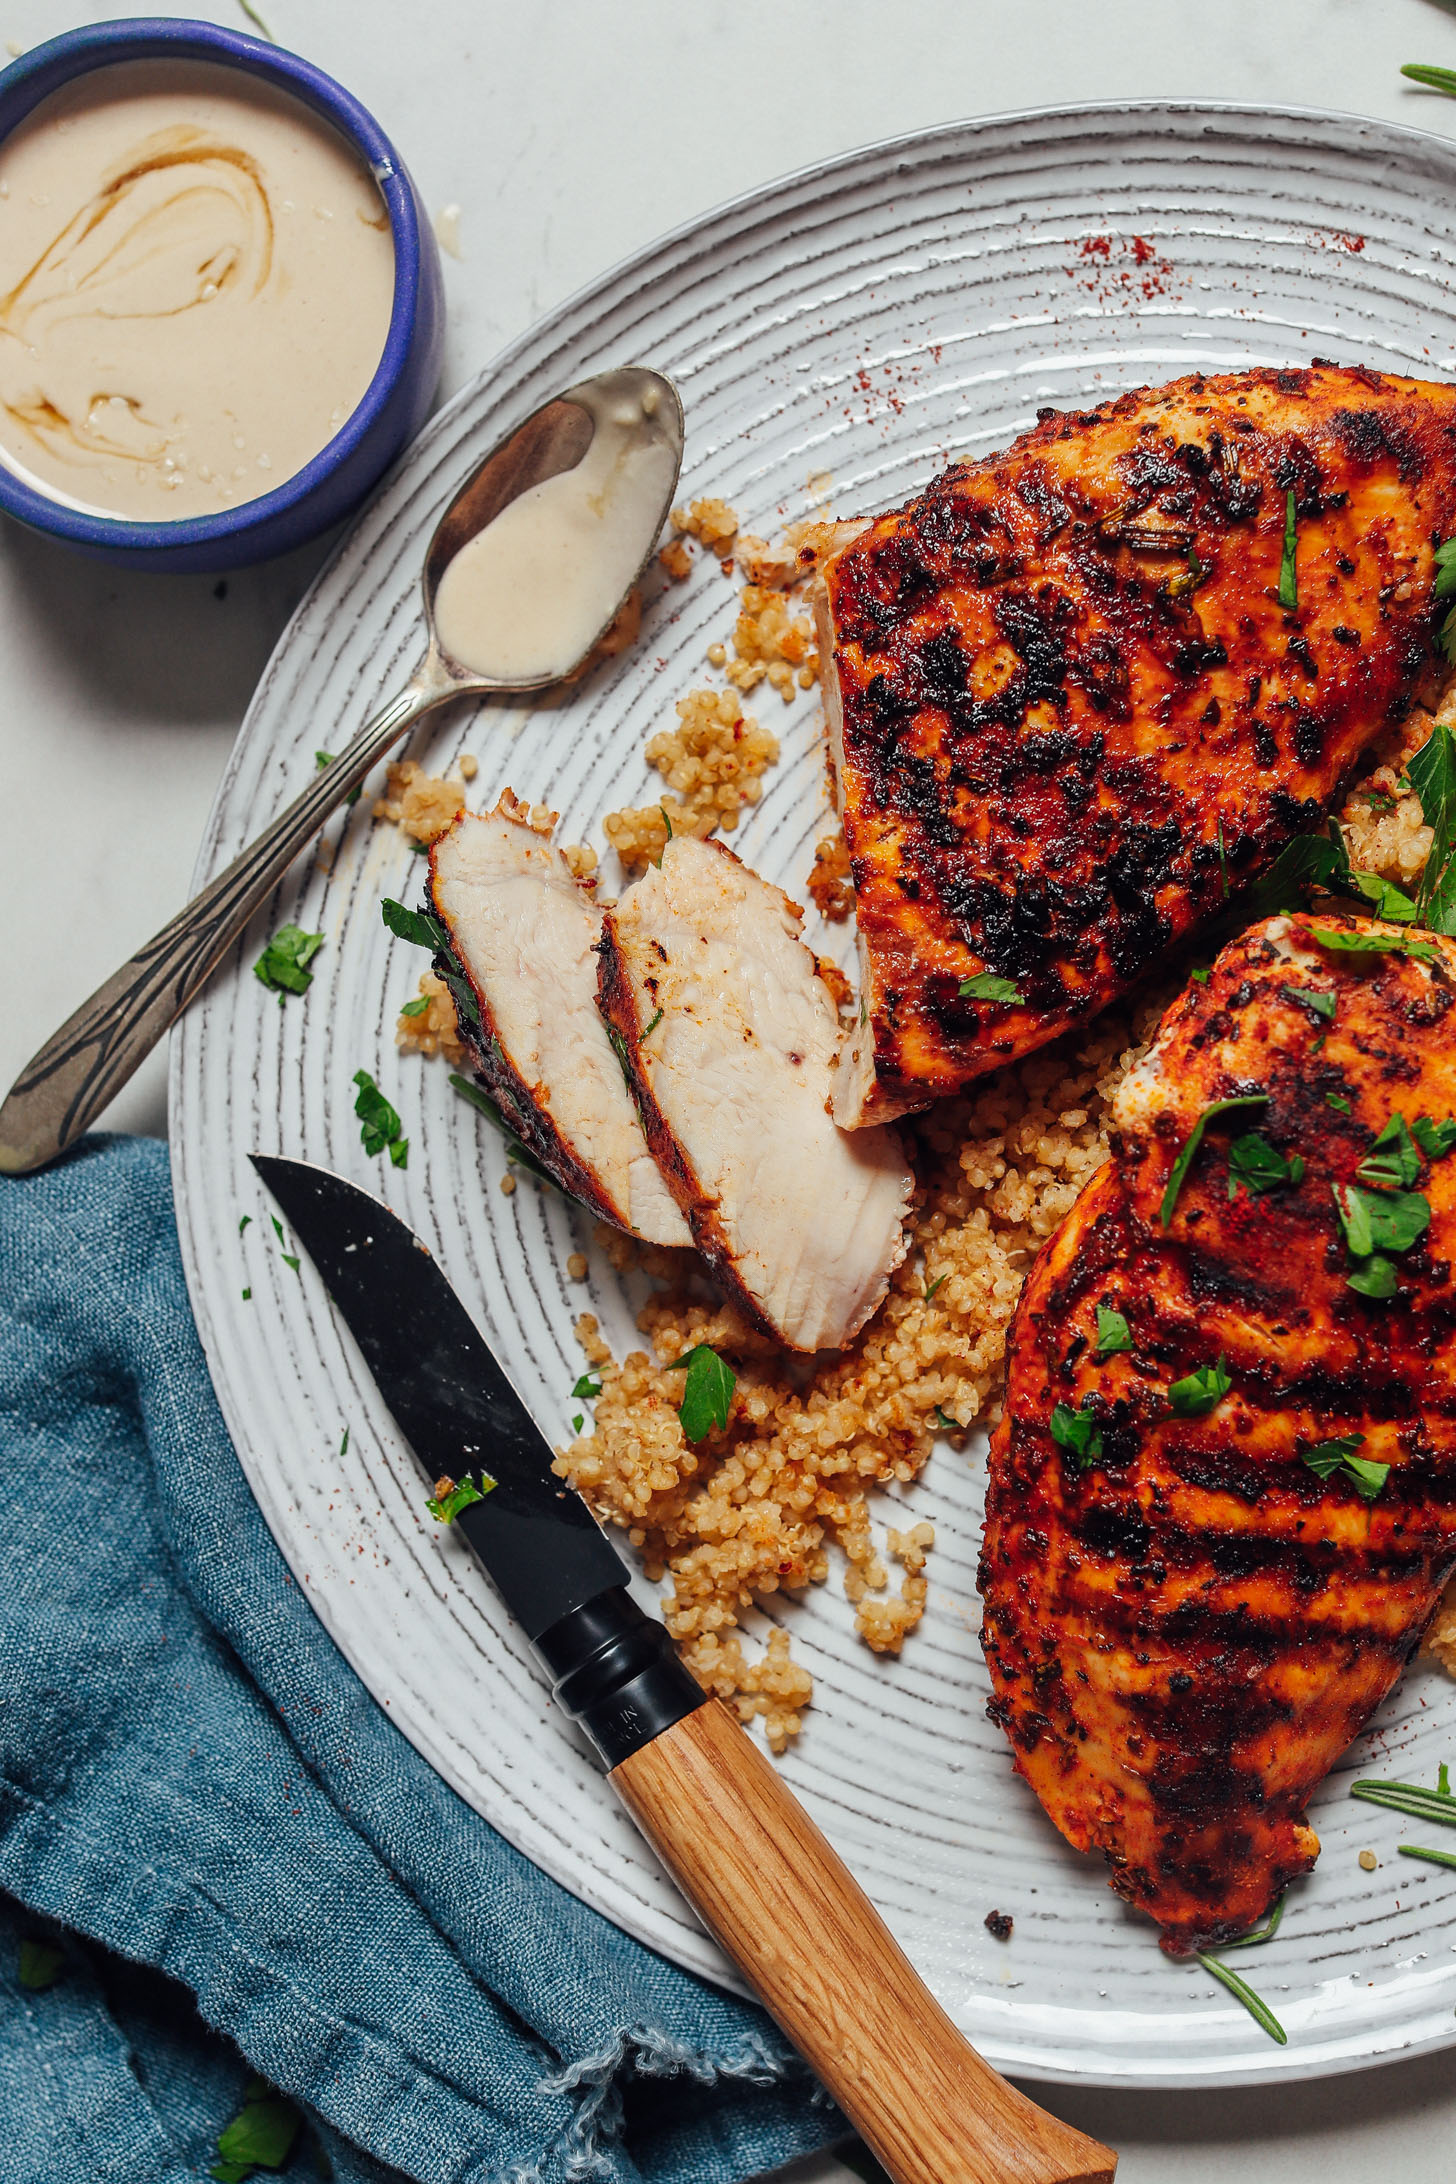 Marinated Grilled Chicken Breasts on a plate with chicken and tahini sauce for serving